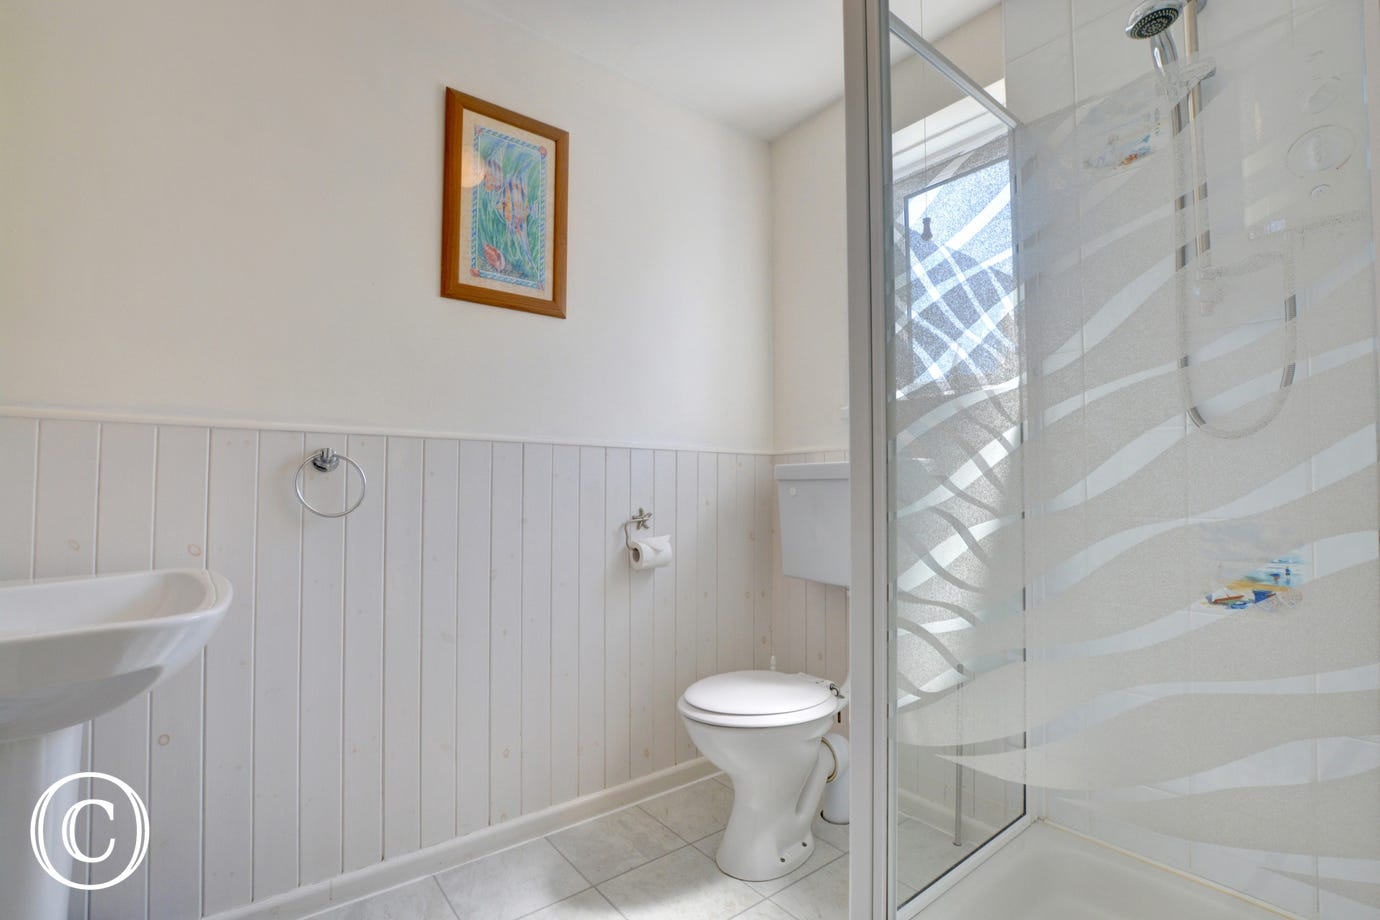 A family shower room at this Saundersfoot holiday property.